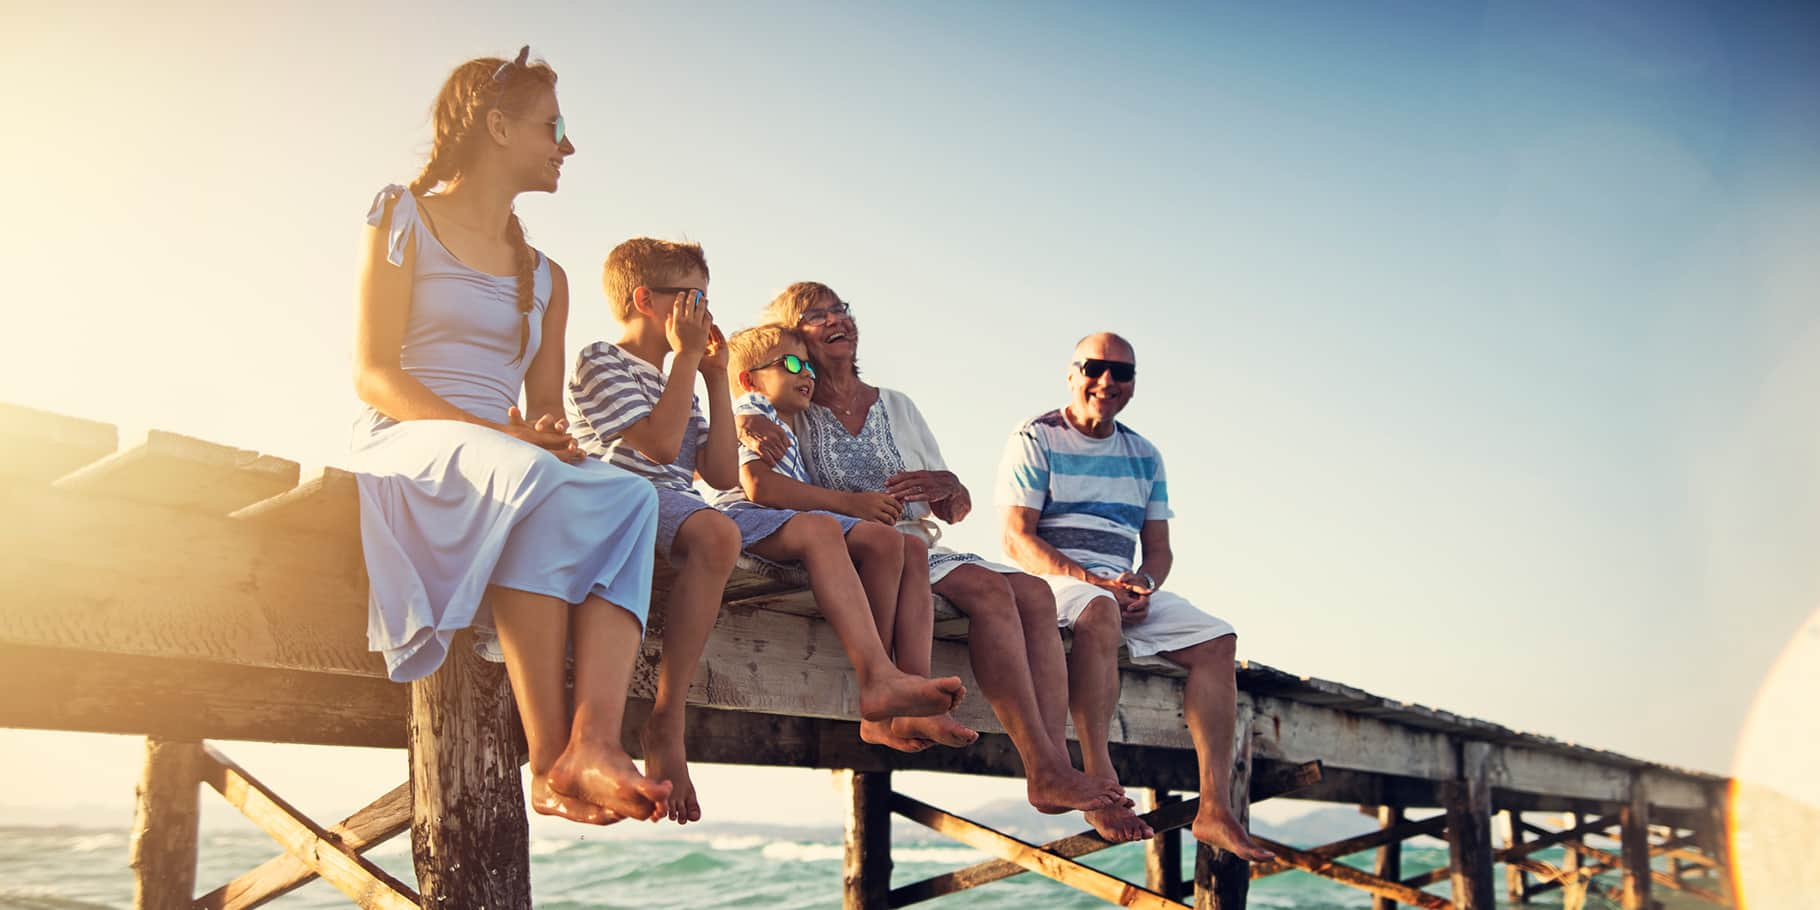 A family of 5 sitting on a pier on a sunny day with their feet hanging over the water.